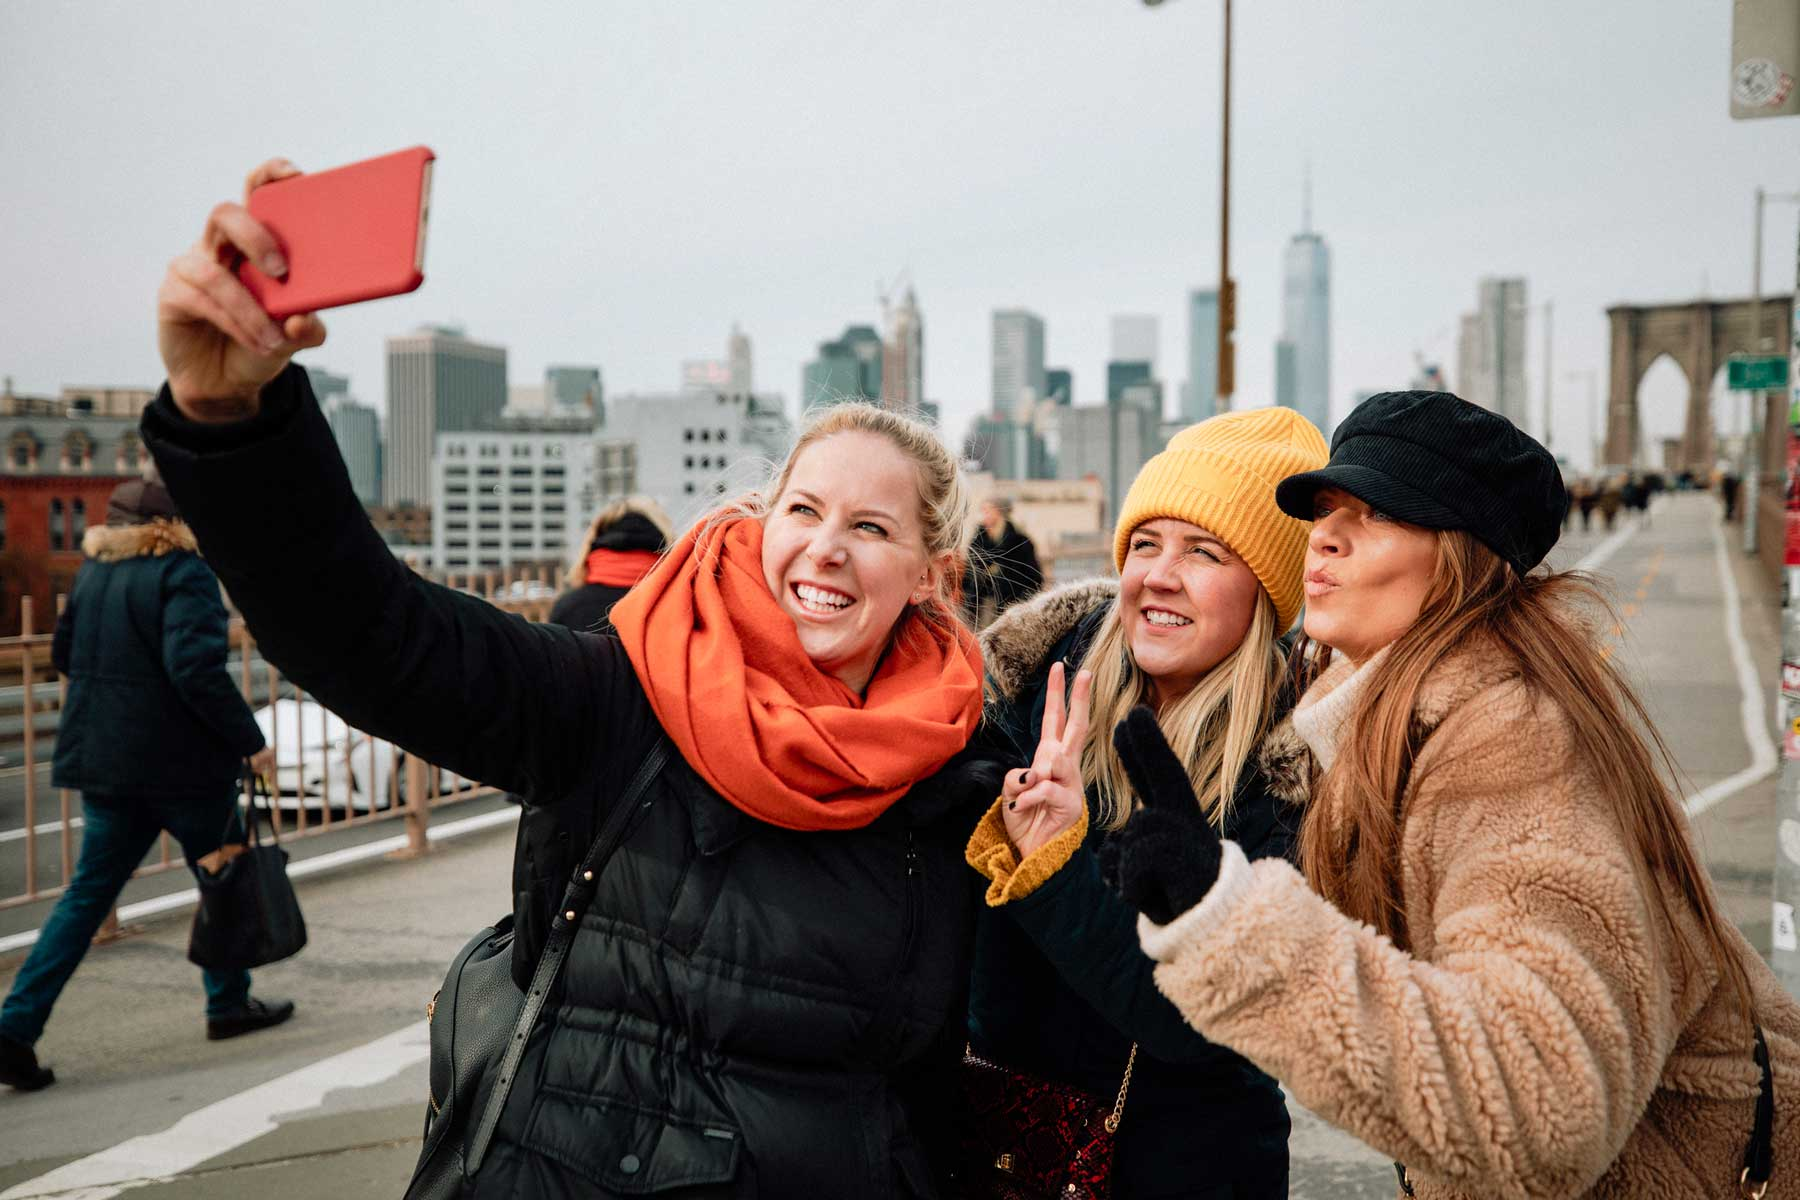 Three women posing for a selfie in New York City during Winter.